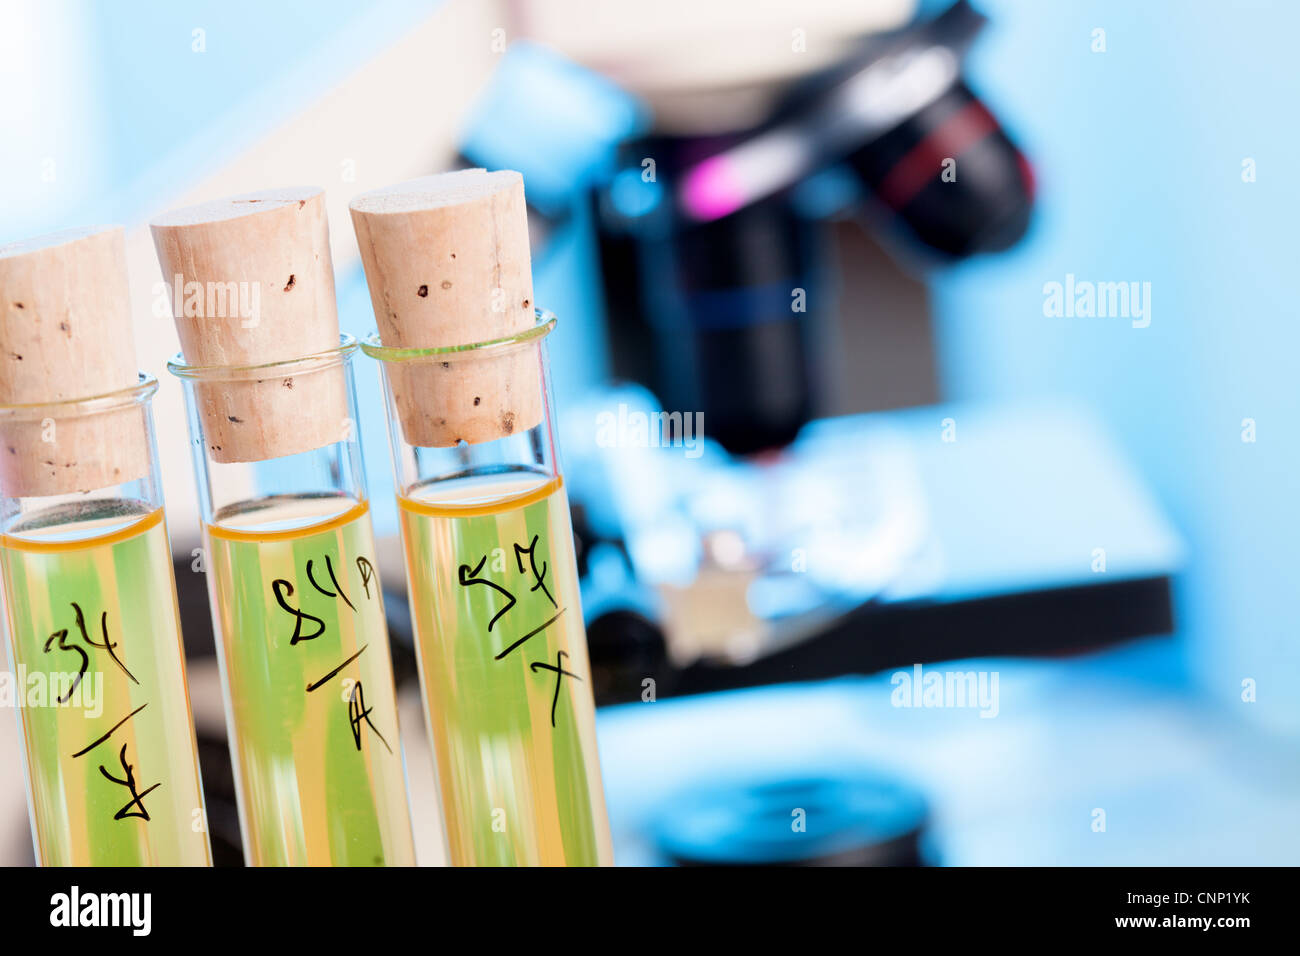 Control safety of food additives in chemical Lab - Stock Image